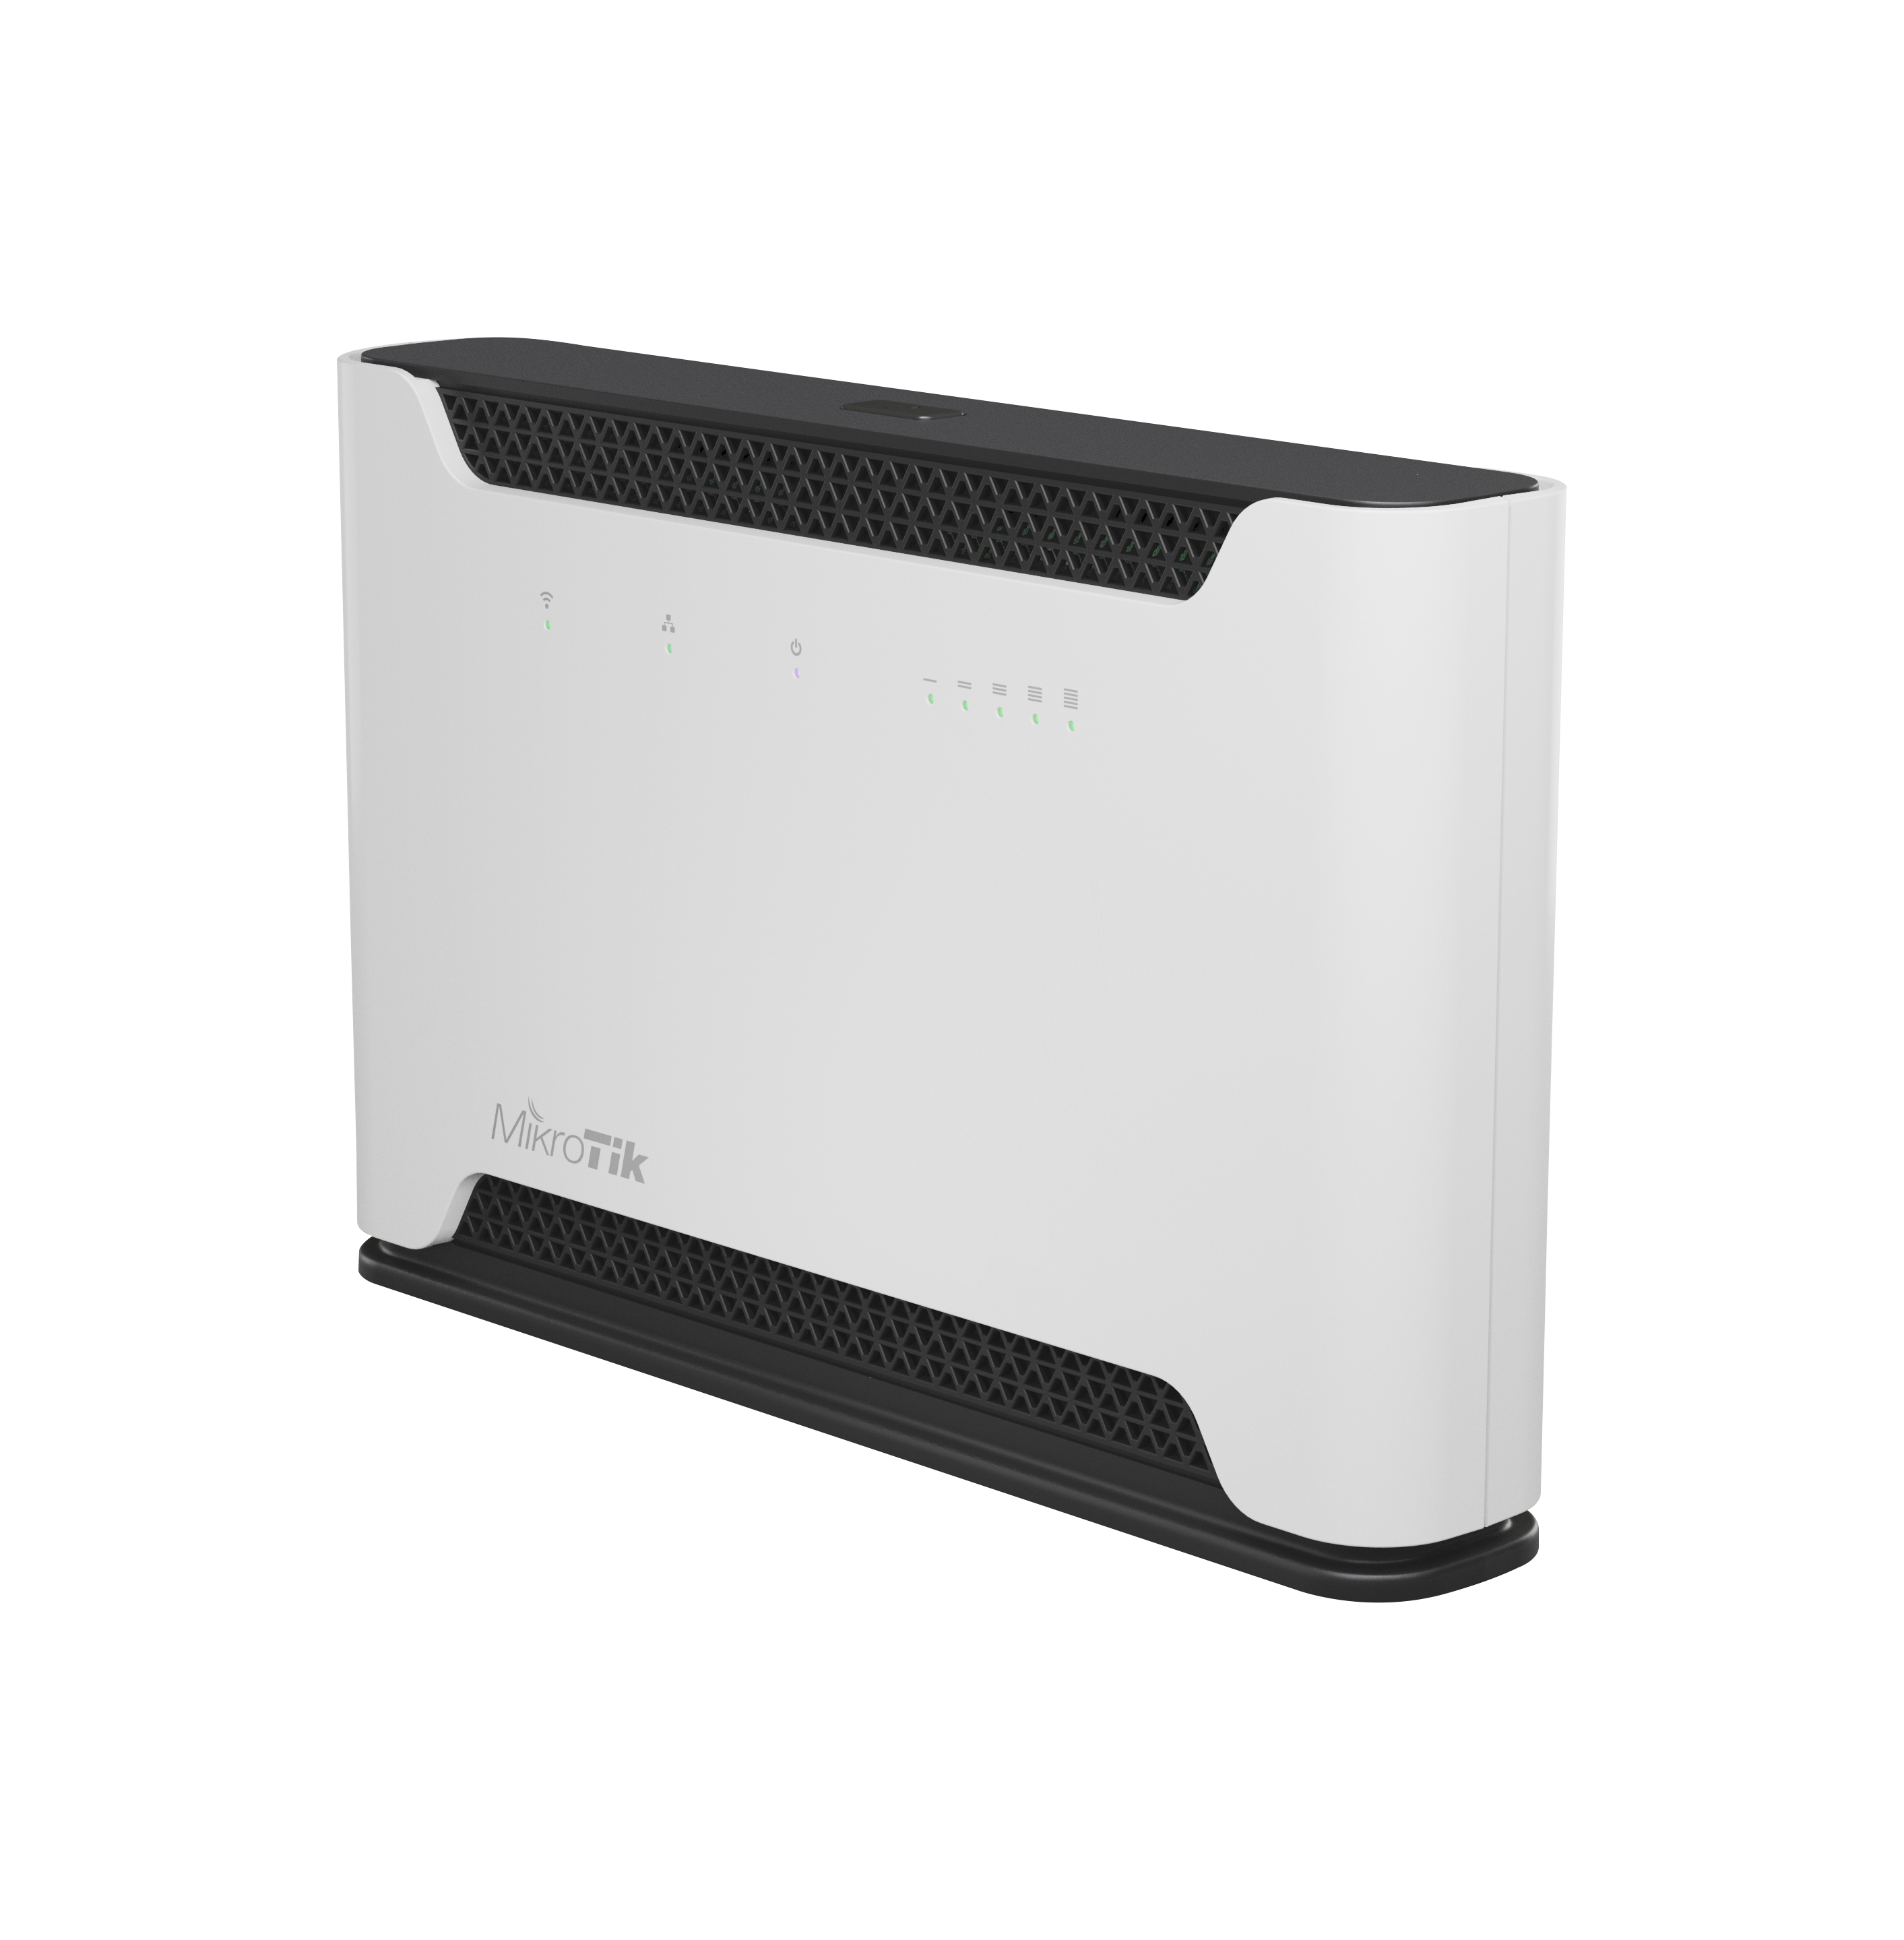 Mikrotik Chateau LTE12 One router to delight them all – introducing the ultimate home AP with LTE support